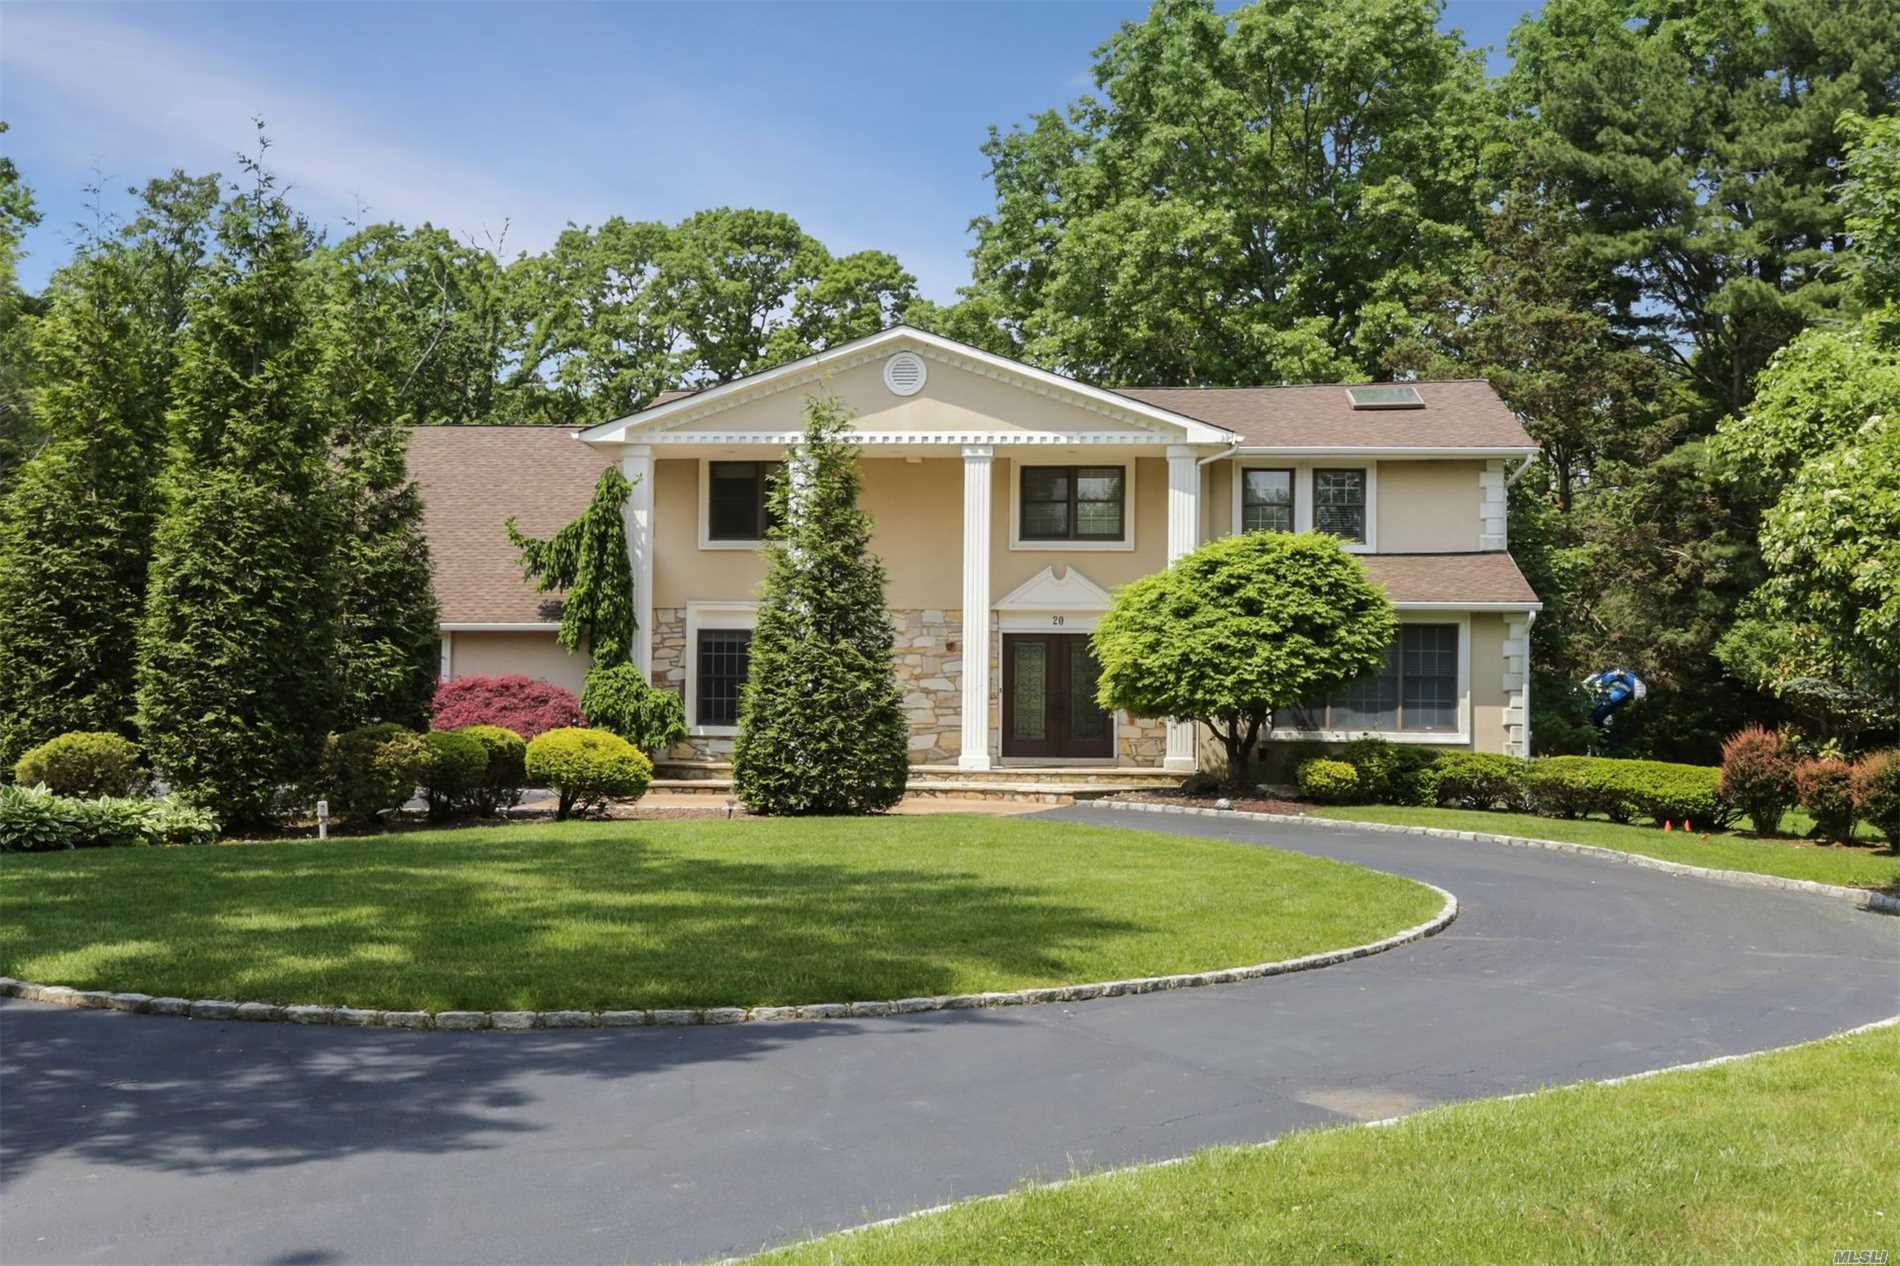 Impressive Colonial With Modern Flair Privately Situated On Flat Country Club Acre In Cul De Sac. Sought After Round Swamp Rd. Location Is Convenient To All.This Distinctive Home Offers Circular Drive, Grand Marble Entry, Rich Wood Floors, Full Guest Suite Off Kitchen, Front & Rear Staircases, 4 Br's Upstairs + Fabulous Bonus Room!Lush Resort Style Property With Pool, Pavers & Plenty Of Room To Play.Legal Finished Basement.Half Hollow Hills Schools.